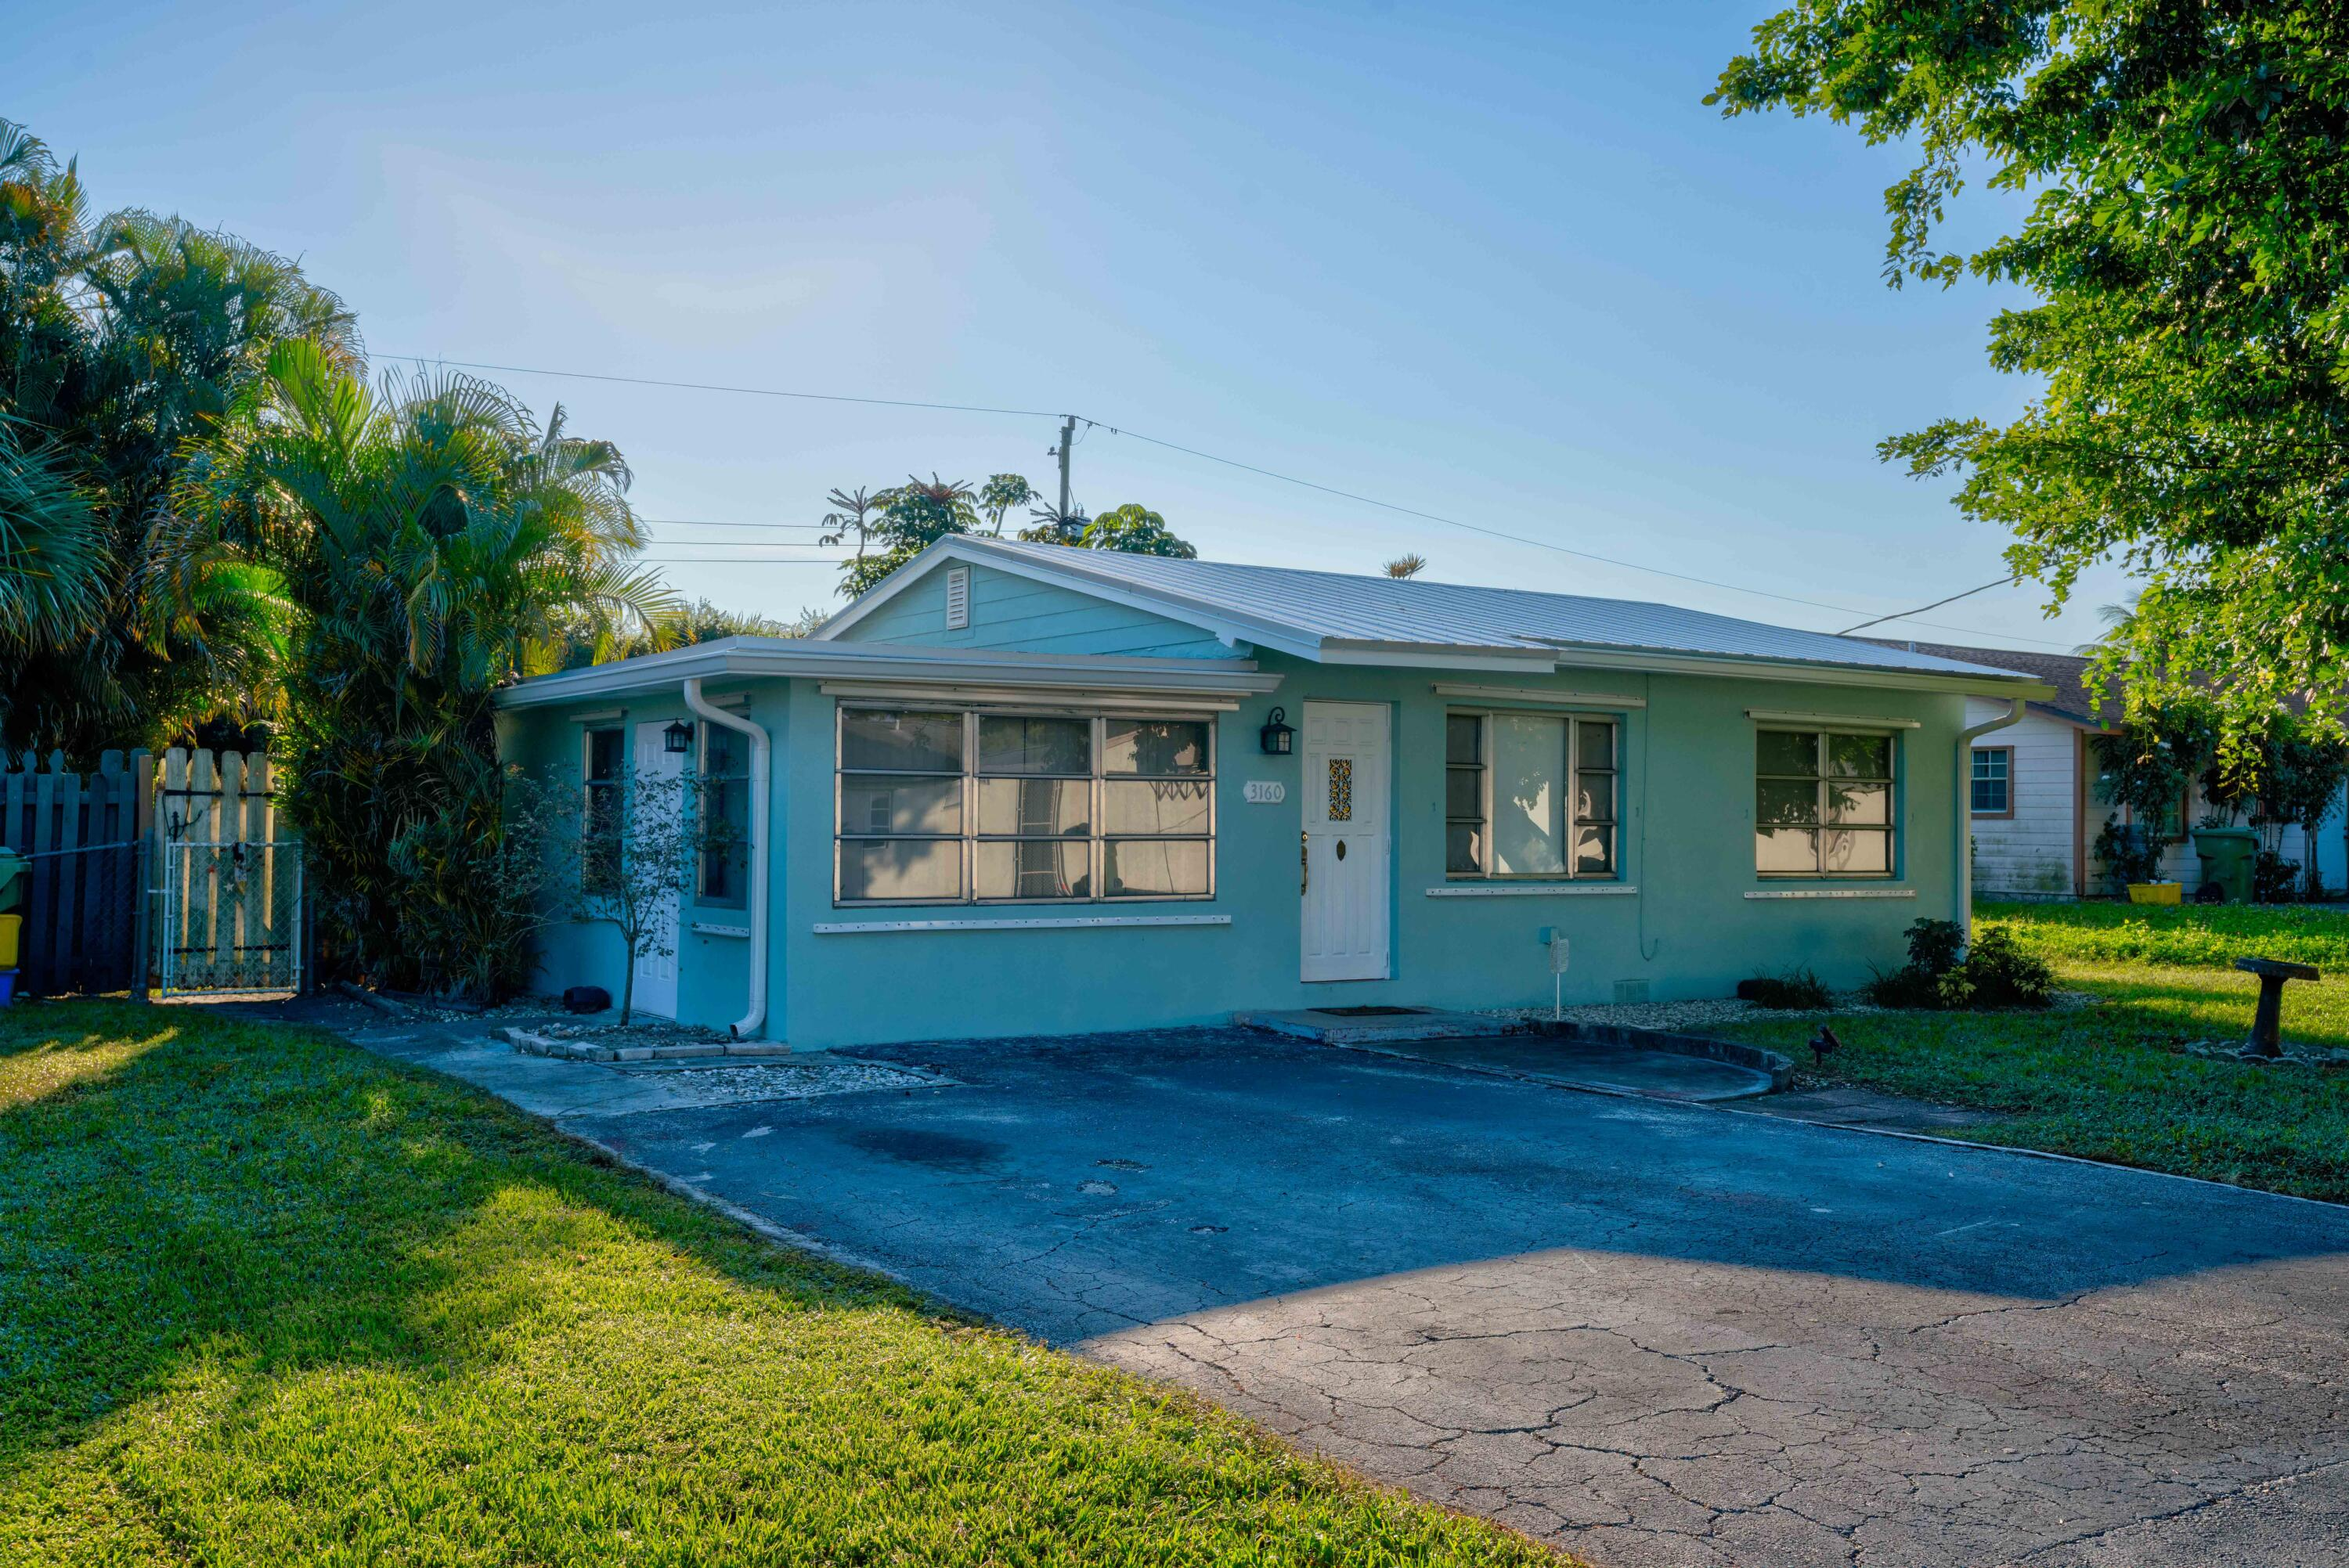 3160 Ford, Palm Springs, Florida 33461